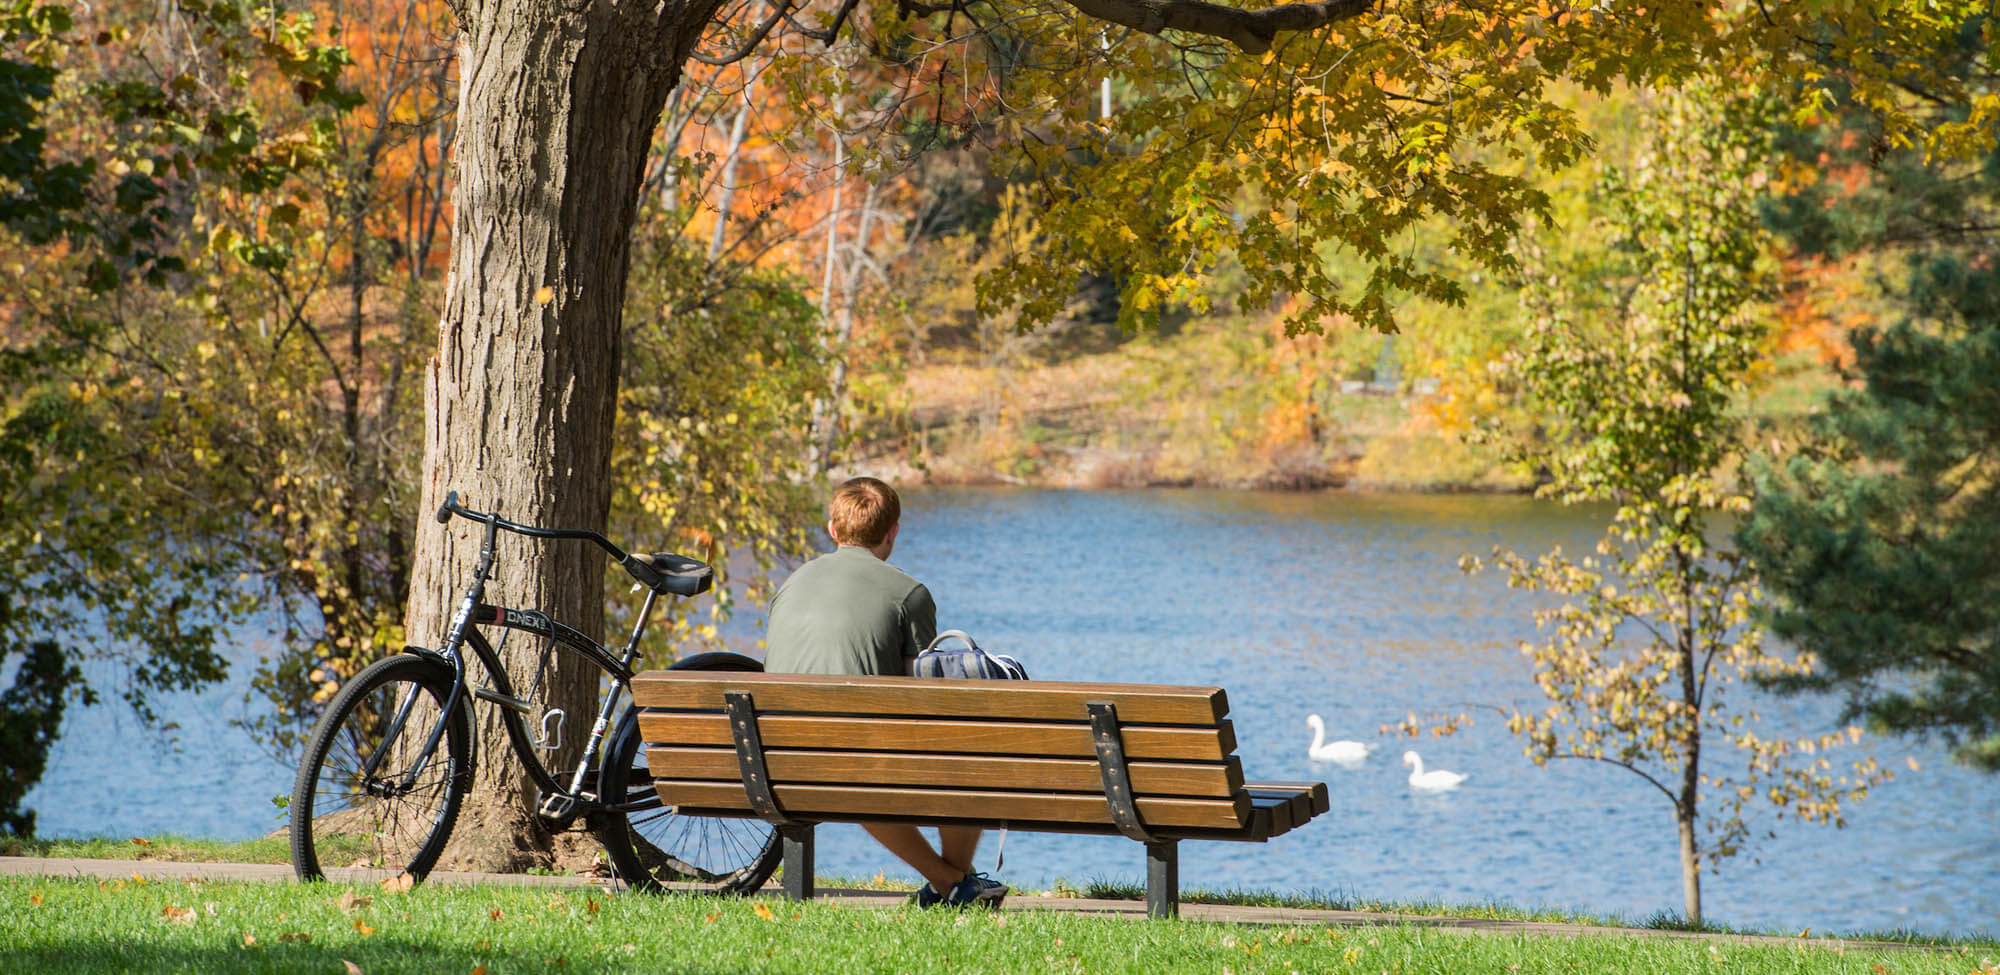 A student on a bench by the lake with a bike in the fall.